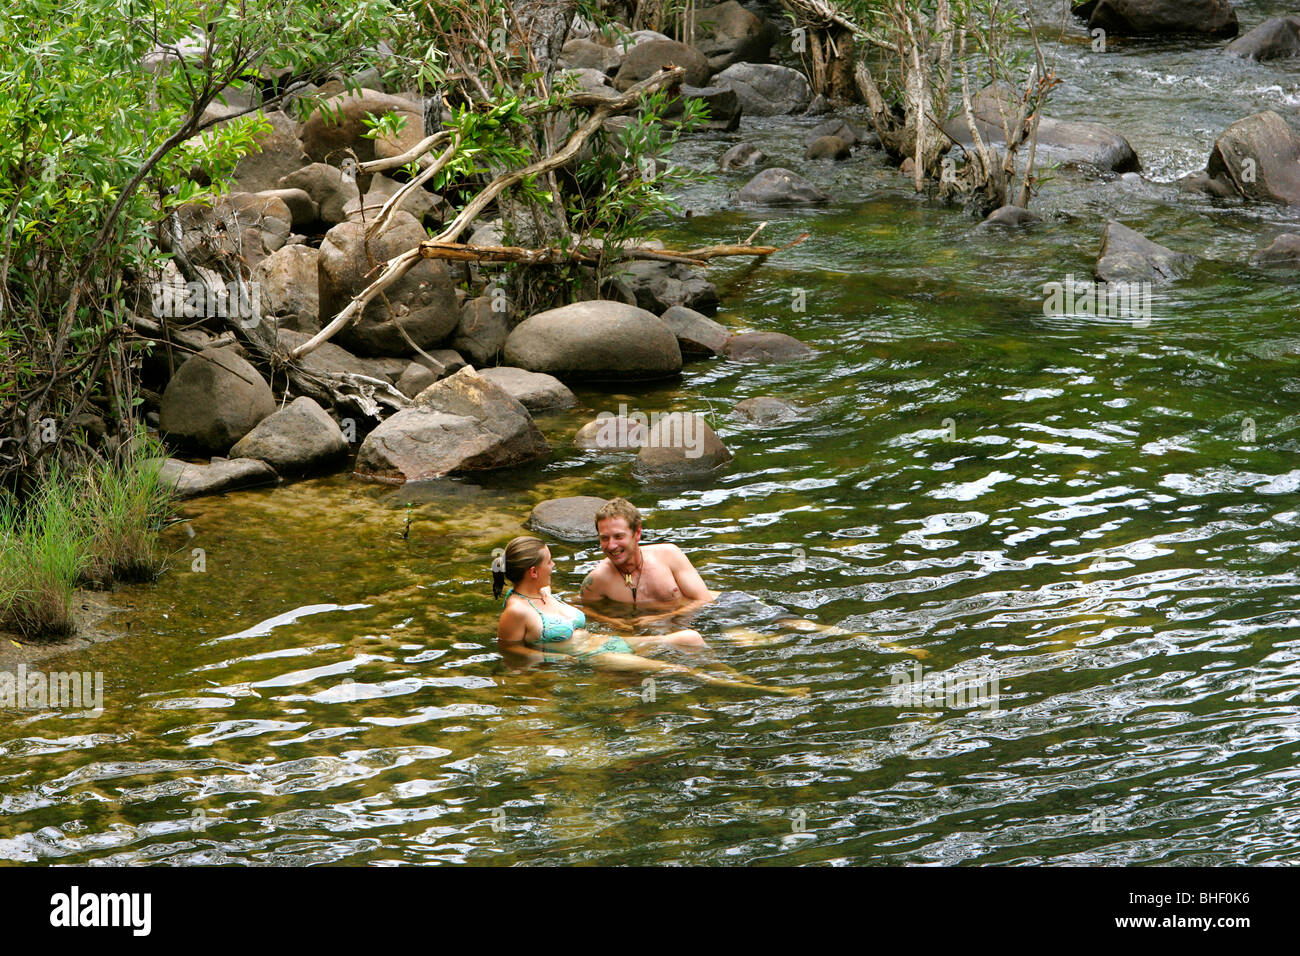 A couple enjoys the water of a rock pool in the escarpment of Nitmiluk National Park, in Arnhem Land, northern Australia. Stock Photo